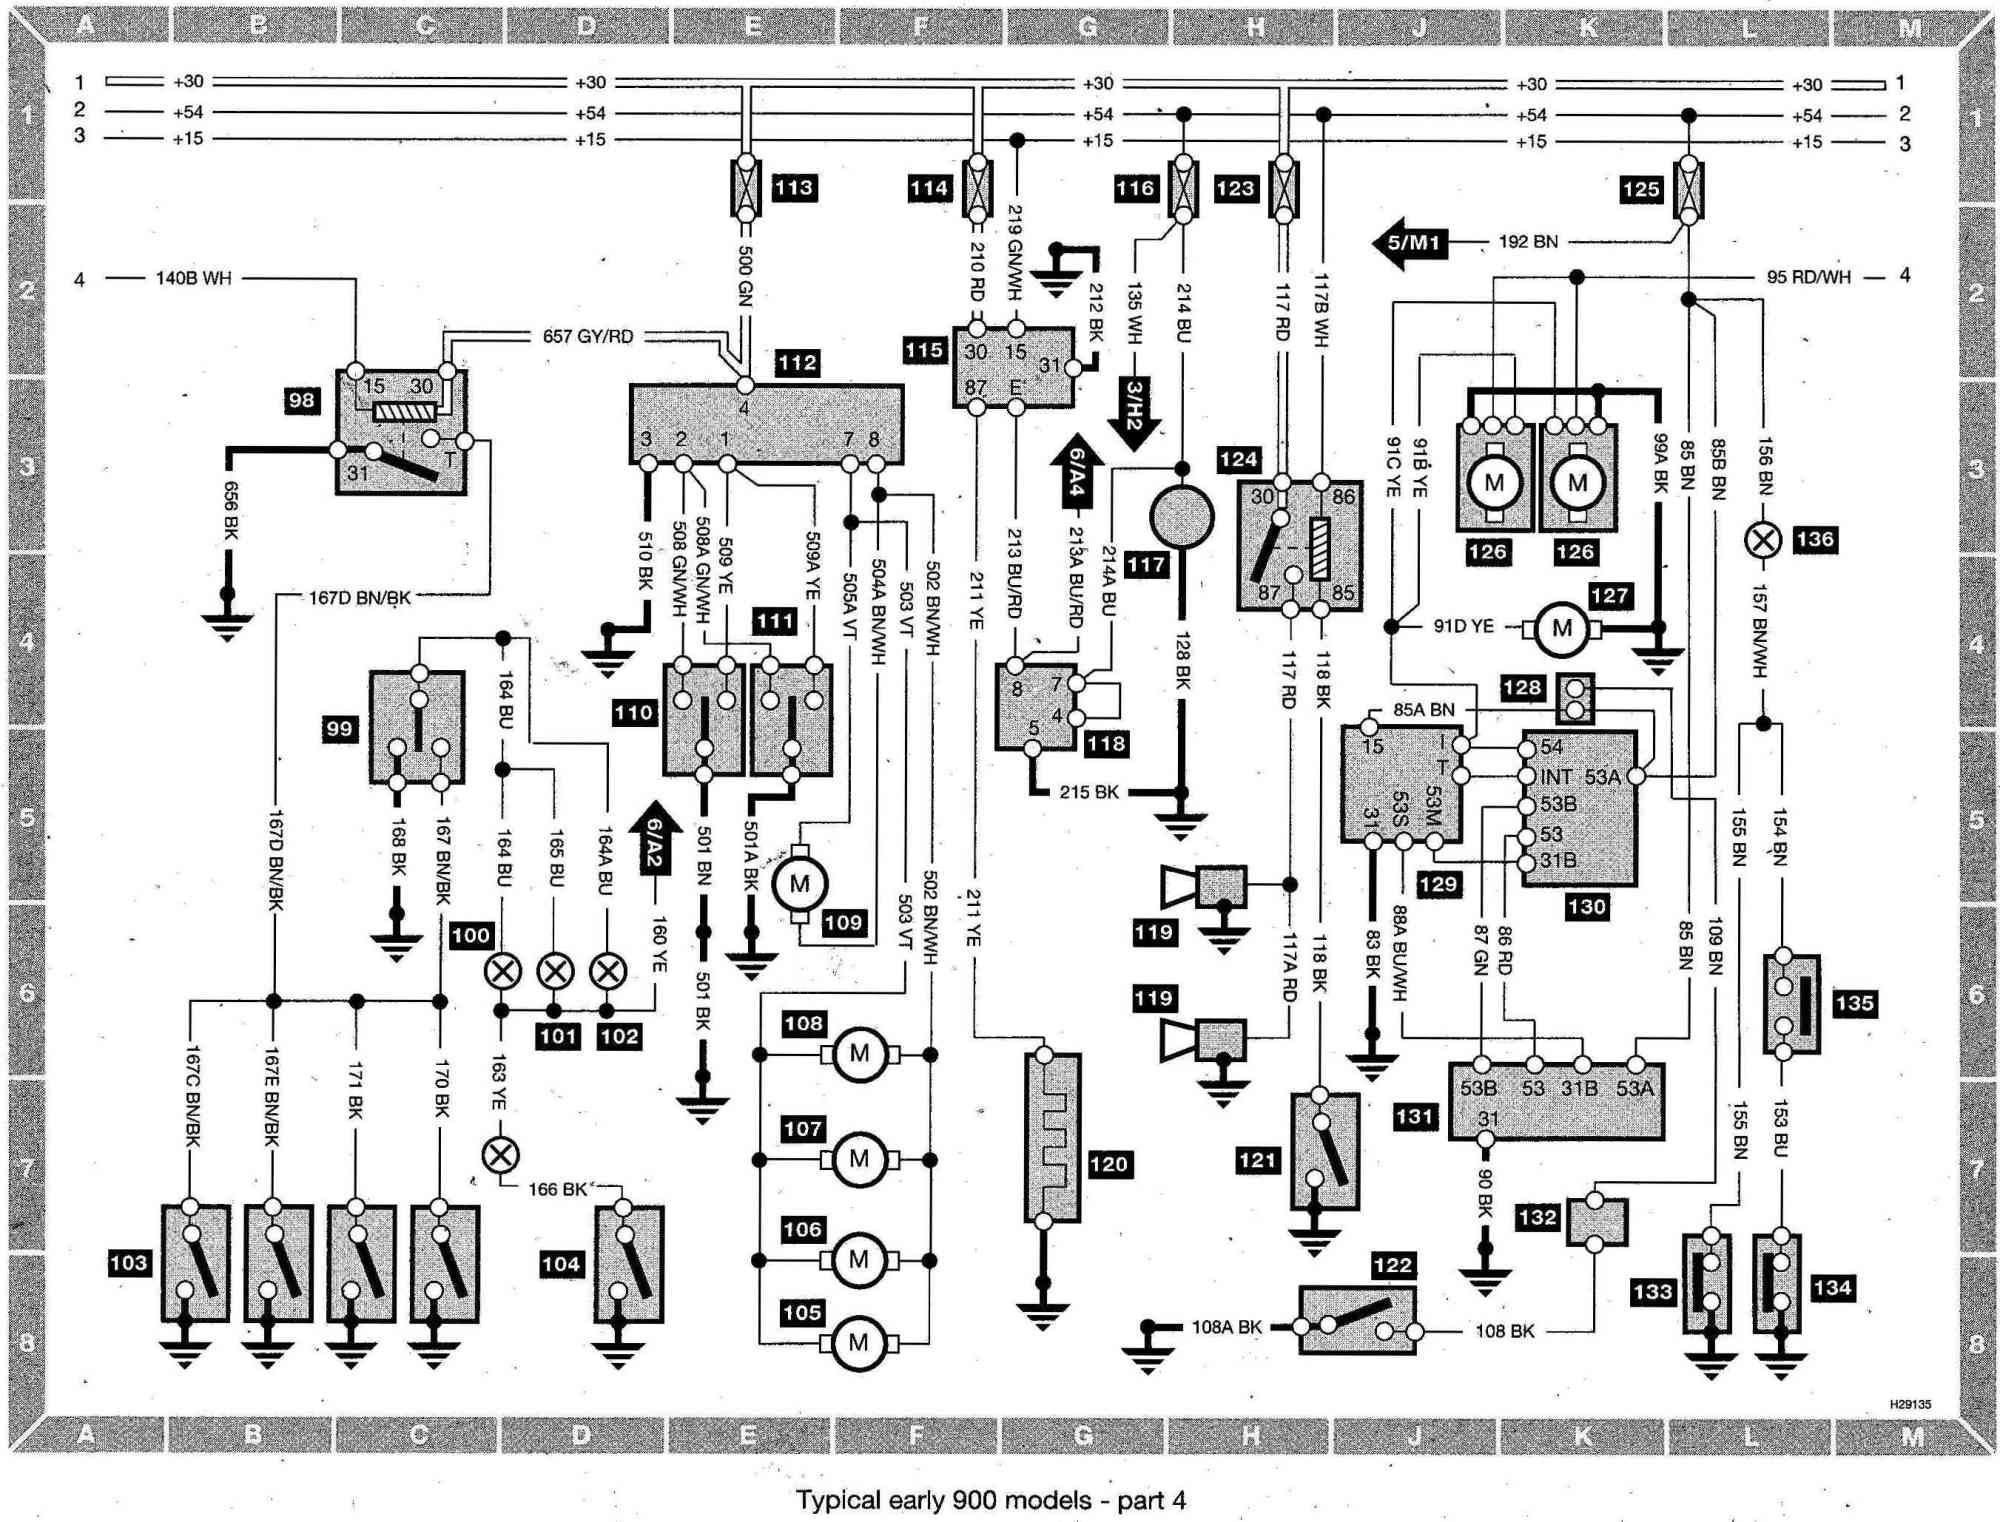 hight resolution of saab 900 fuse diagram schema diagram database saab 900 fuse box diagram saab 900 fuse box